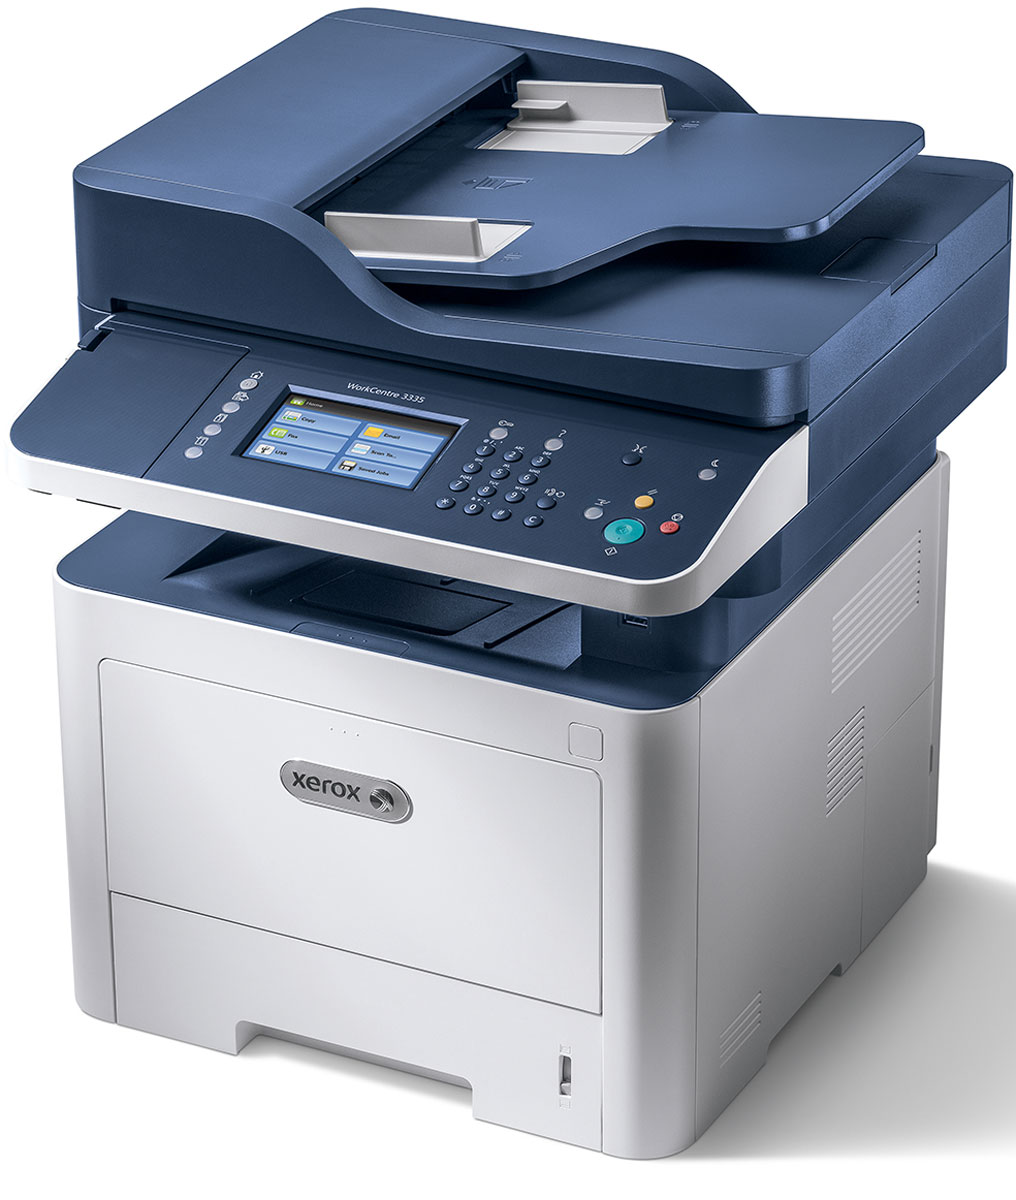 Xerox WorkCentre 3335DNI МФУ